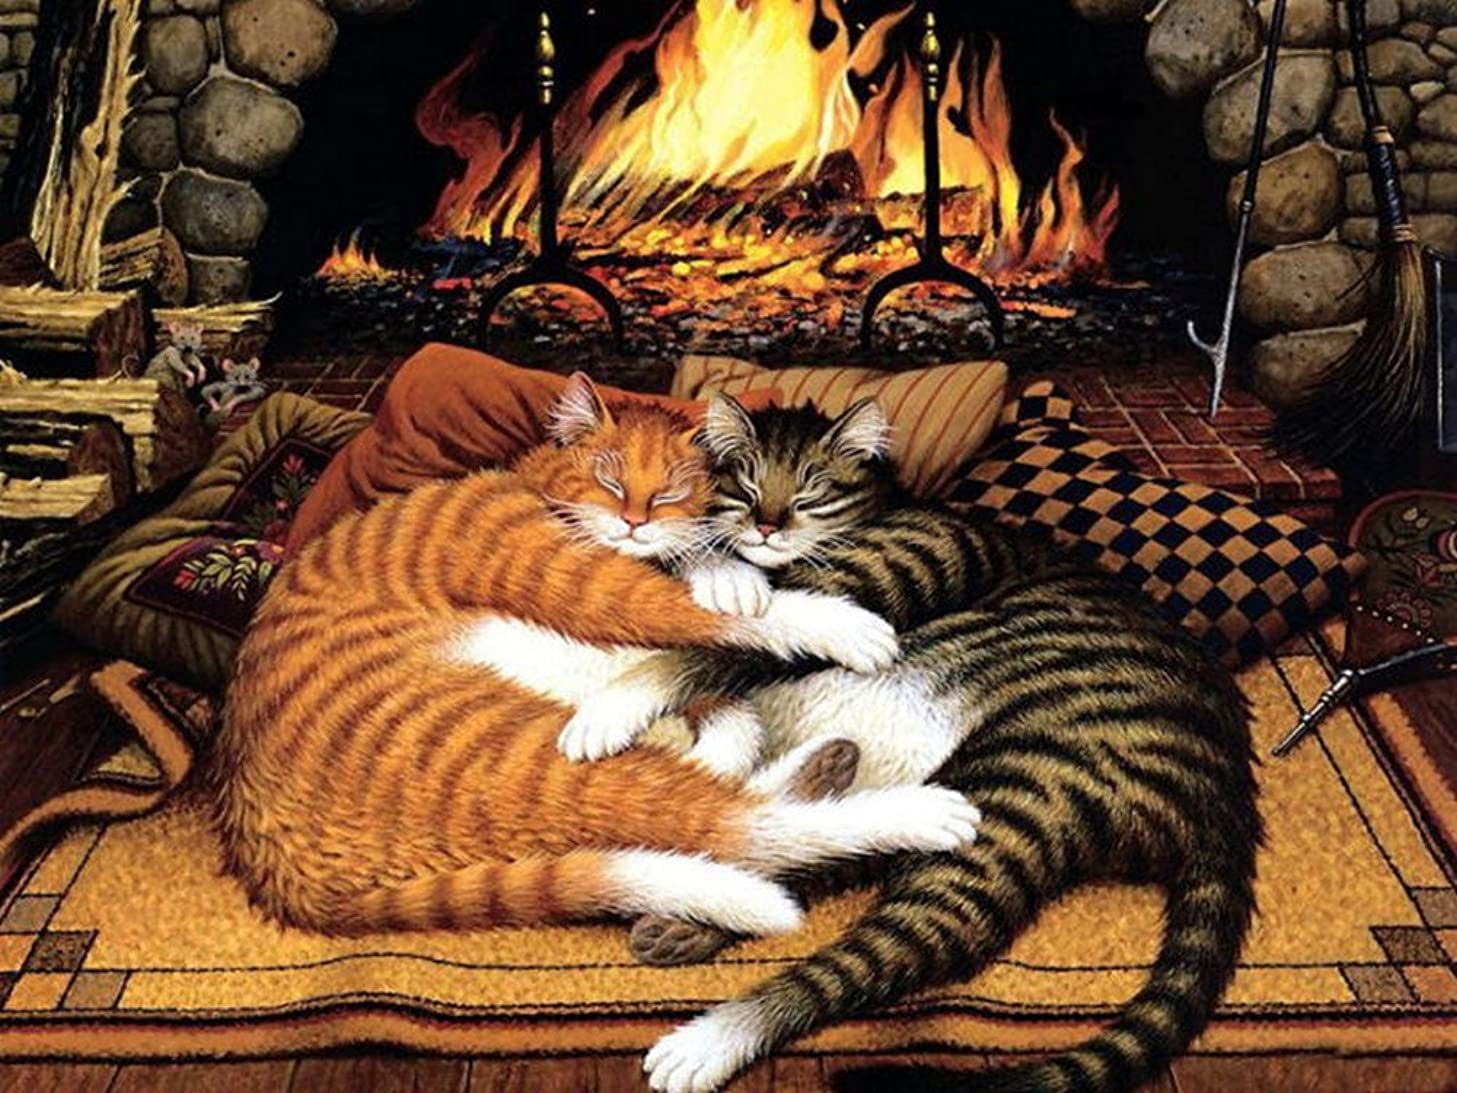 Colour Talk Diy oil painting, paint by number kit - Orange cat and black cat 1620 inch.